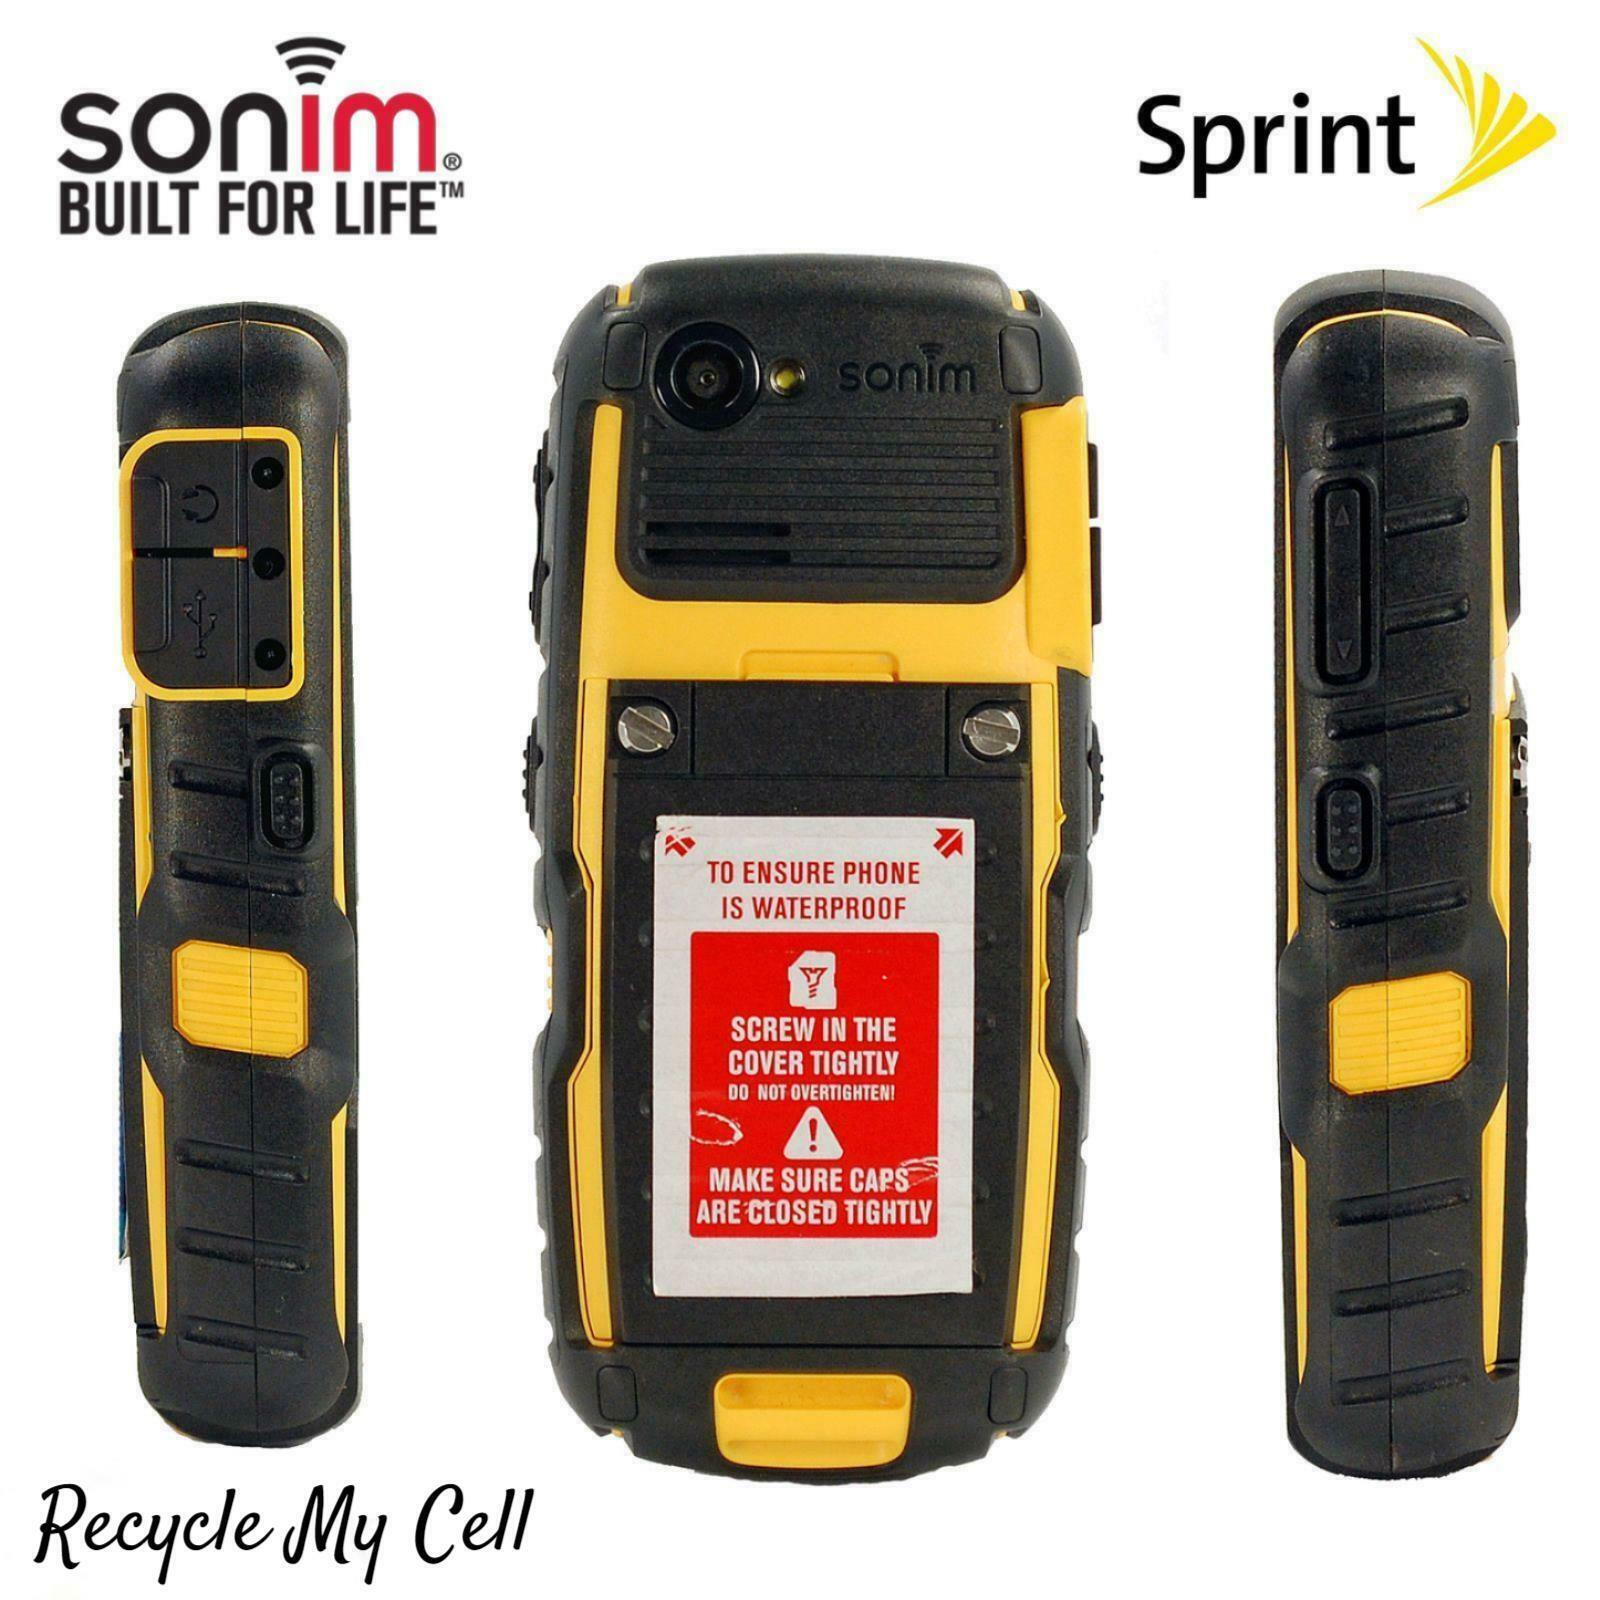 Sonim XP3410 (Sprint) XP Strike Rugged Cell Phone - 3G Compatible - Military